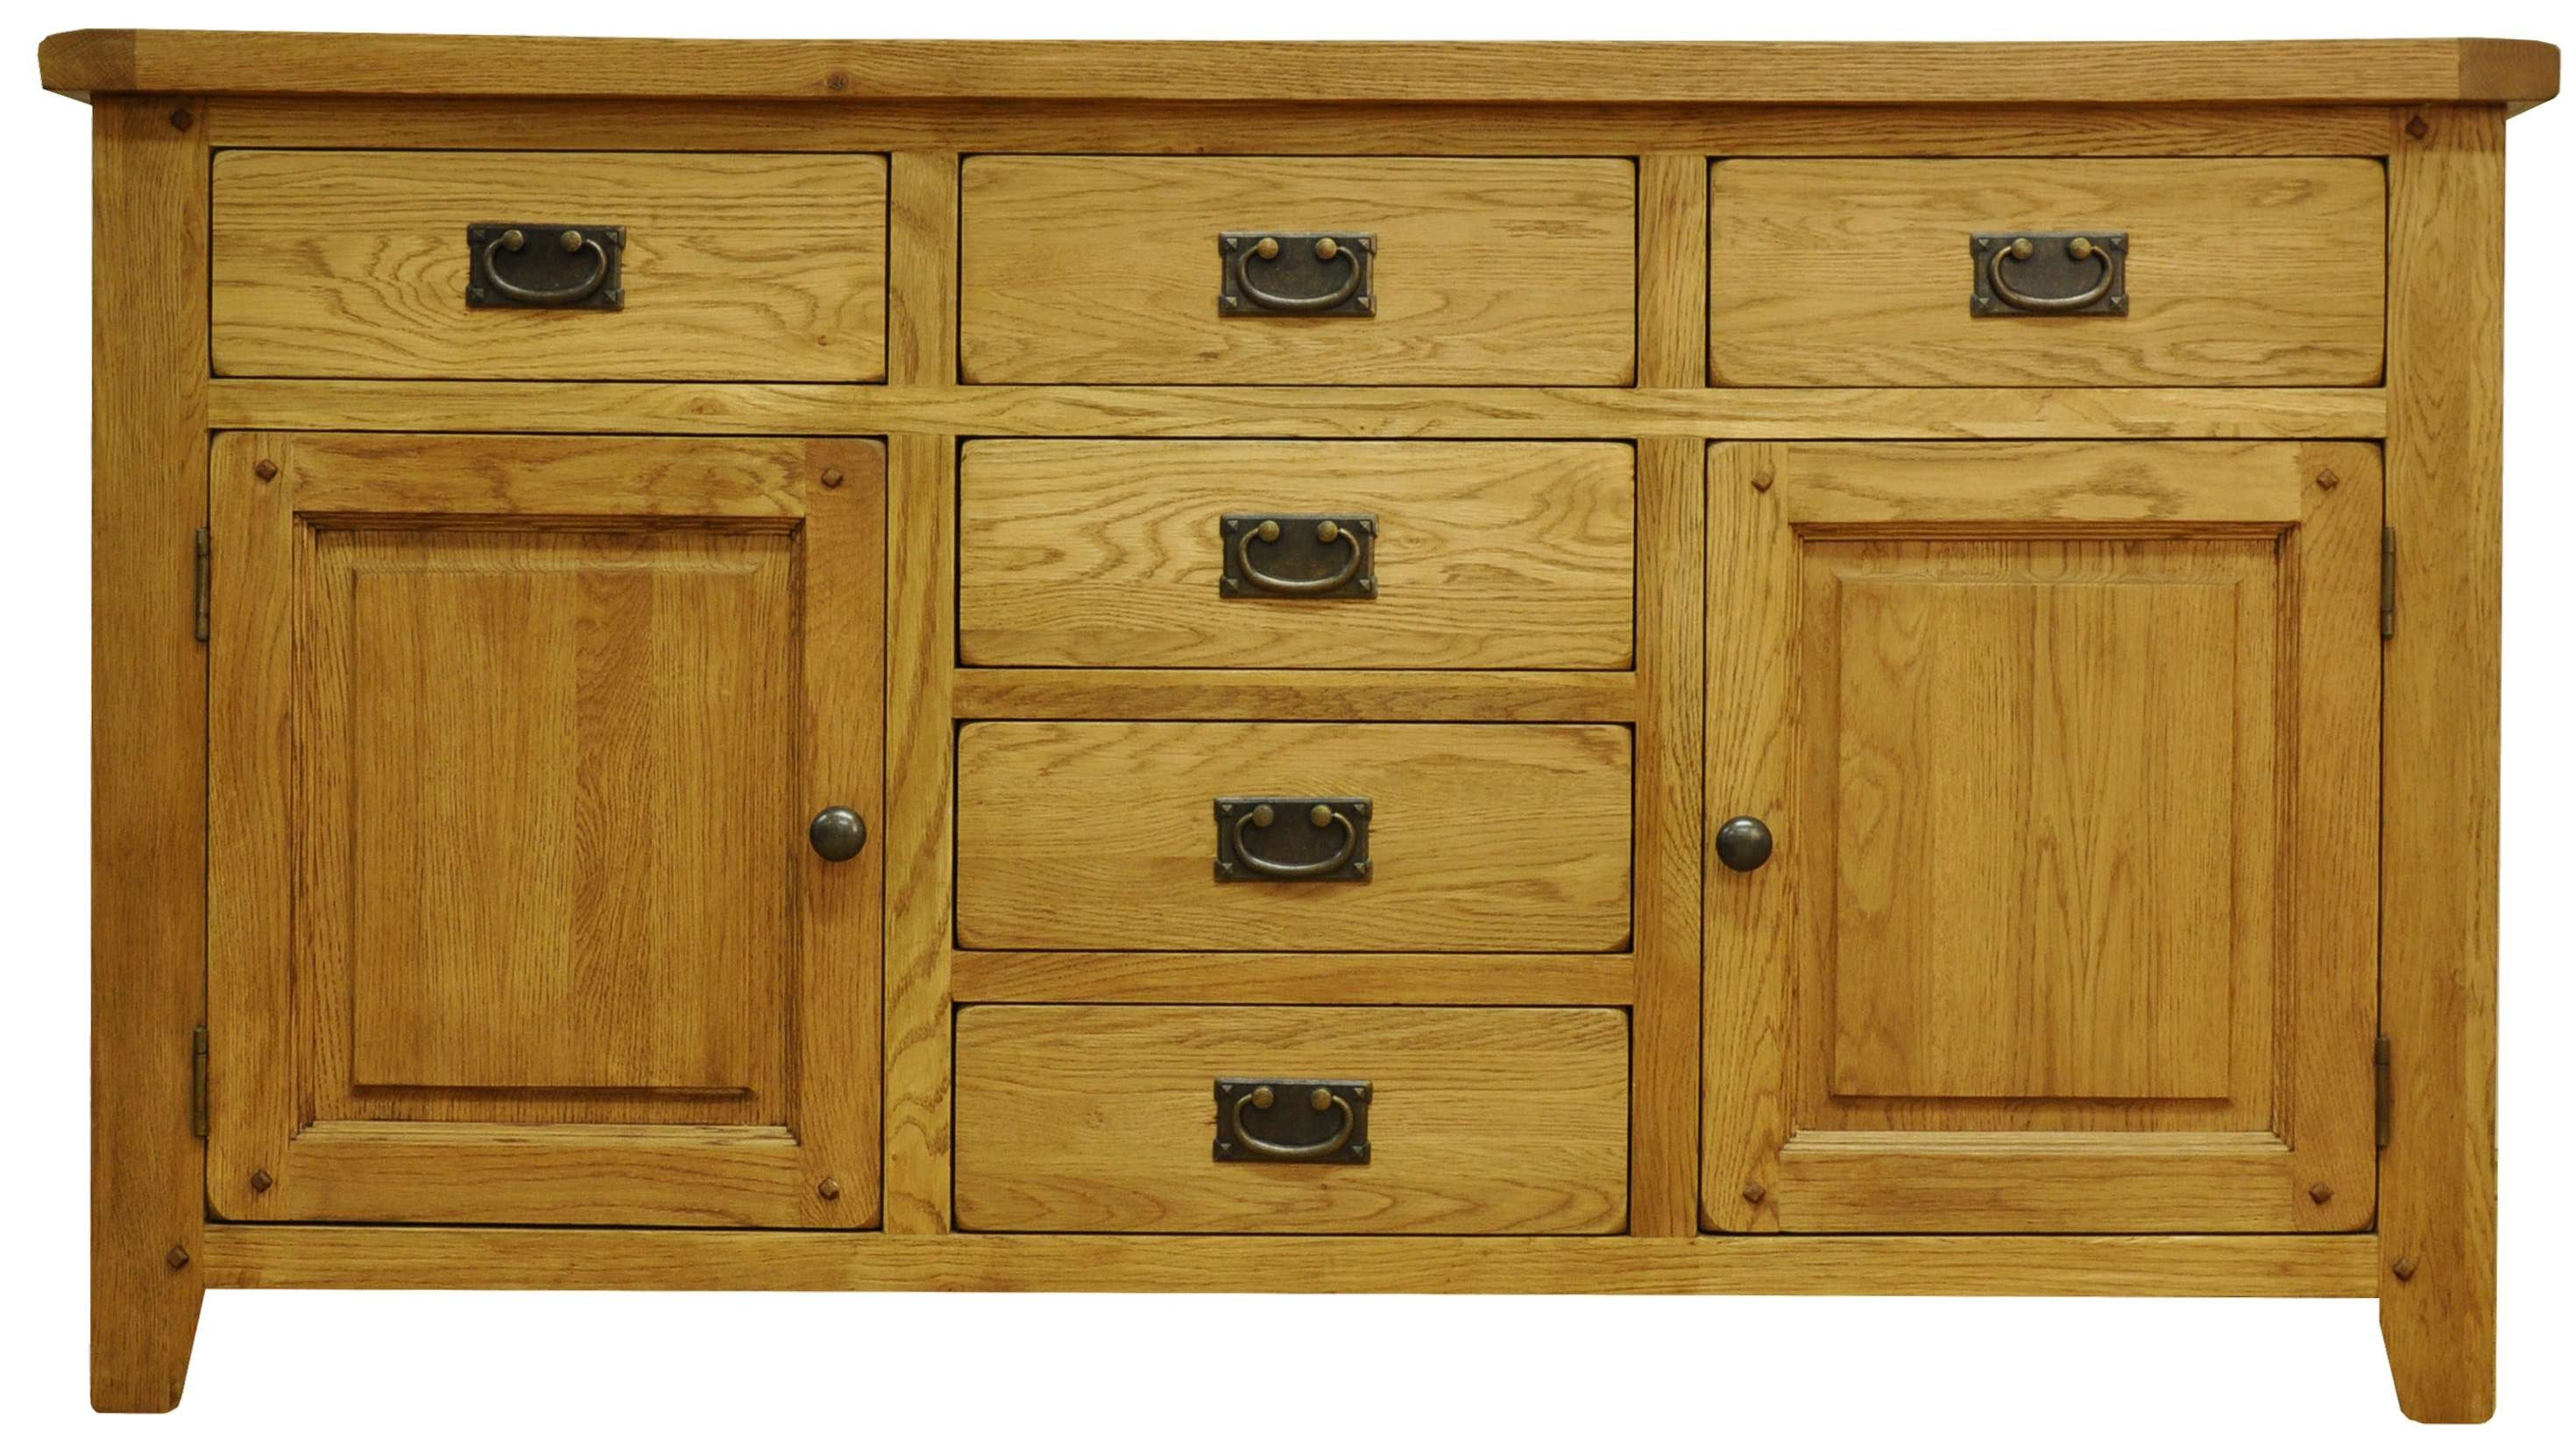 Oldbury Rustic Oak Sideboard With 2 Doors And 6 Drawersstanton With Rustic Oak Large Sideboards (View 2 of 20)